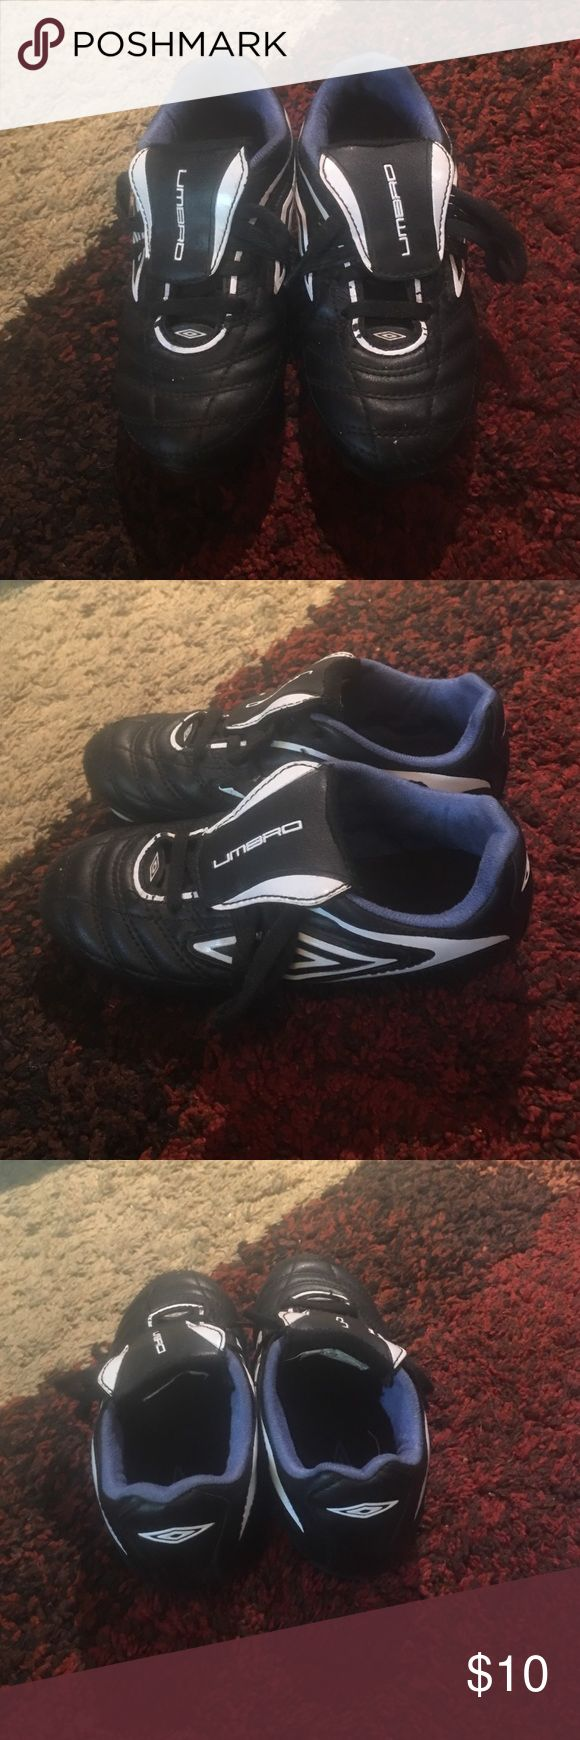 Umbro toddler soccer shoes Umbro toddler boys soccer shoes size 12 in great condition. Umbro Shoes Sneakers